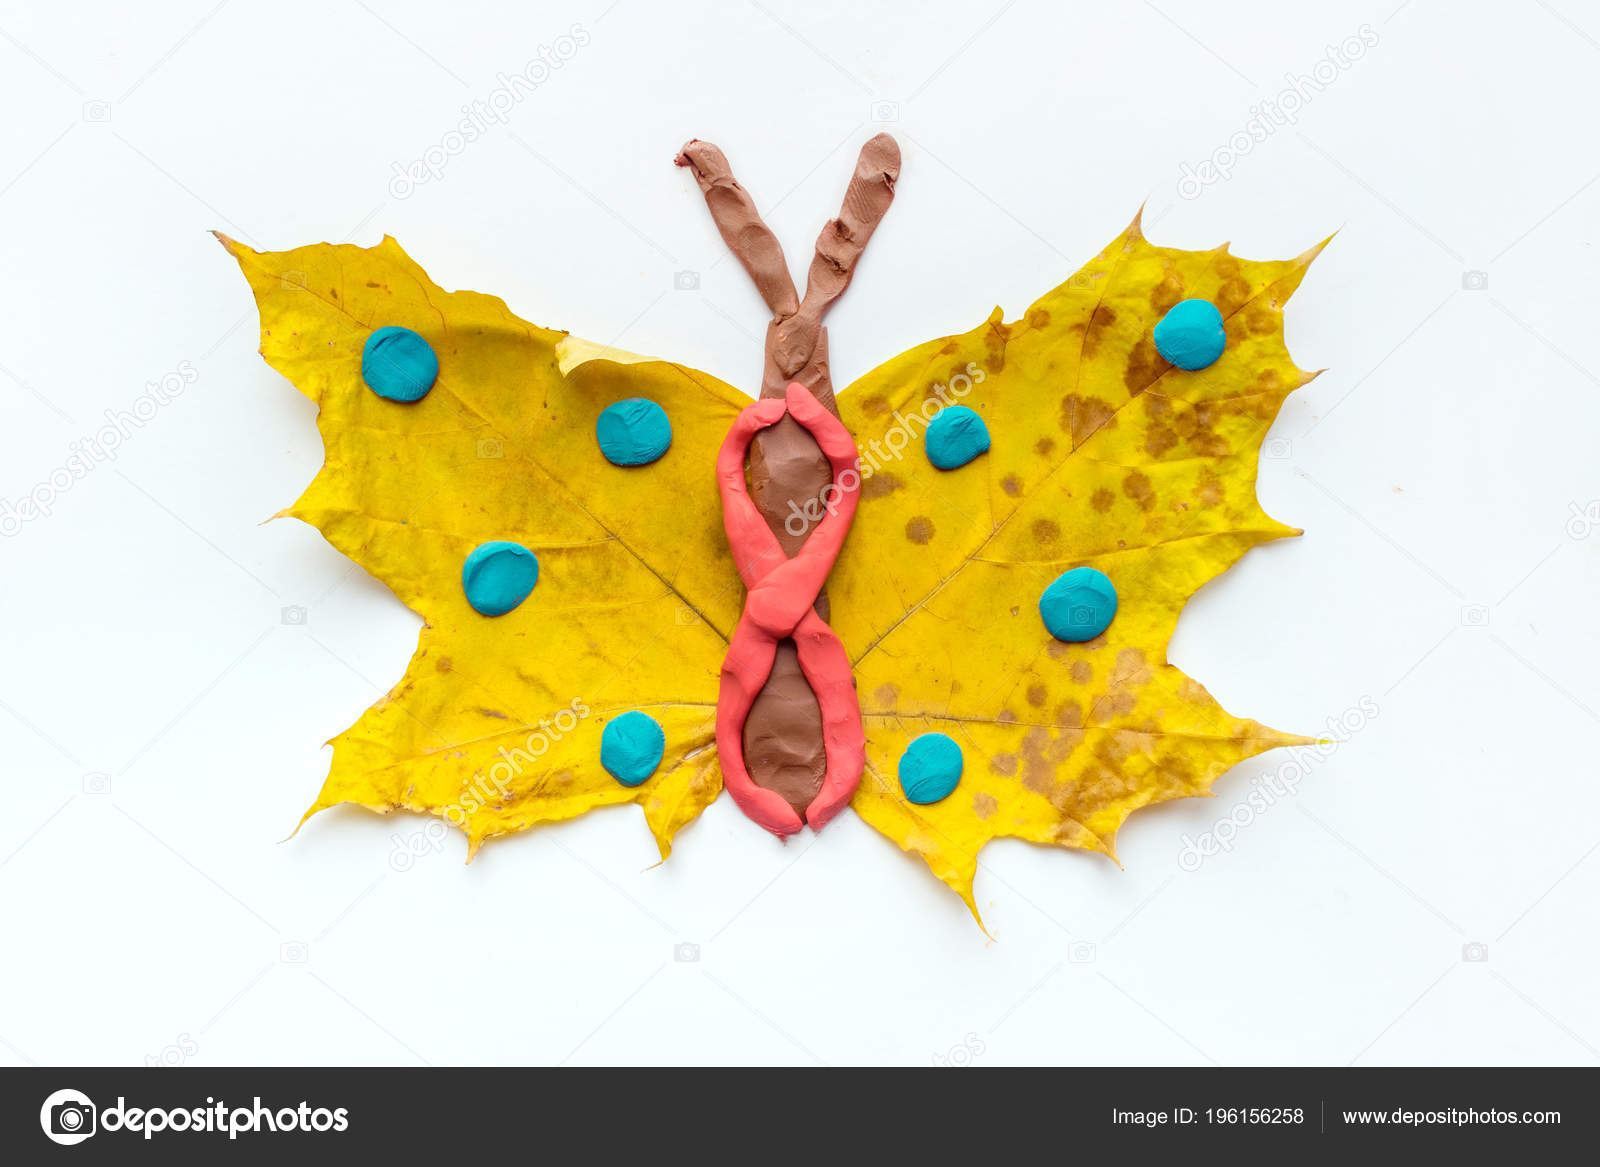 Fall Leaf Crafts Kids Craft Handmade Butterfly Dry Yellow Leaves